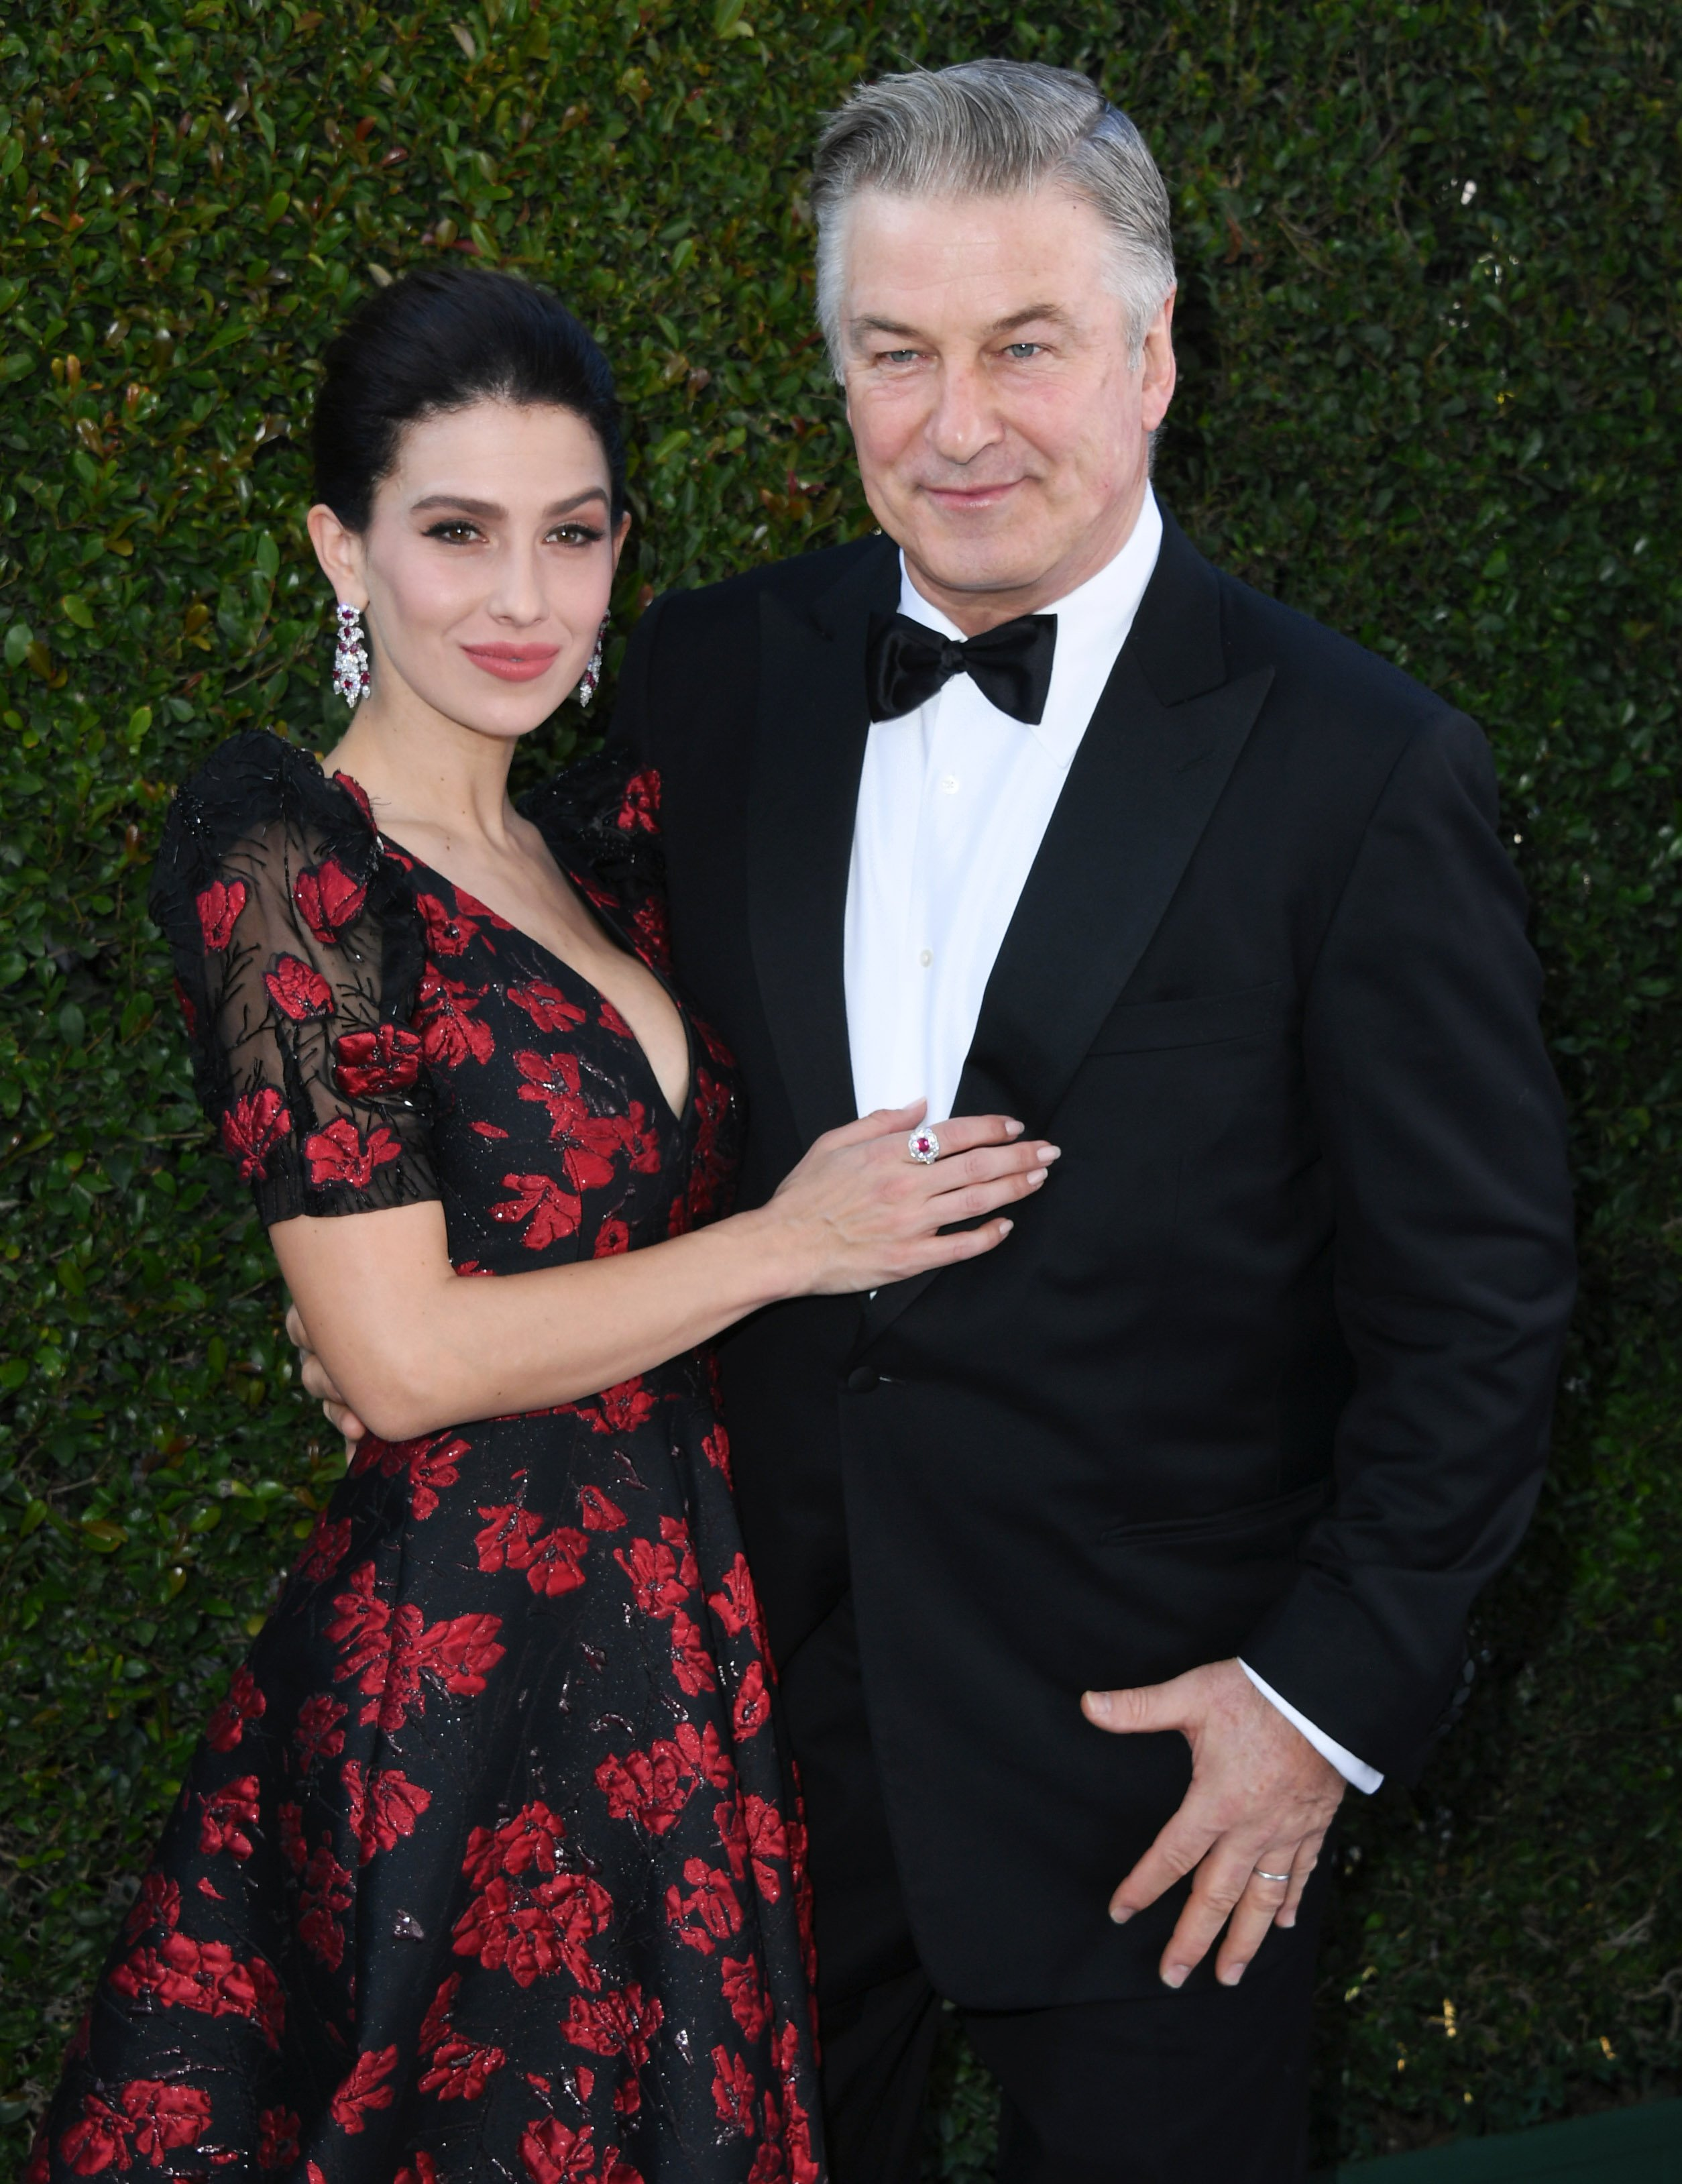 Alec and Hilaria Baldwin pictured at the 25th Annual Screen ActorsGuild Awards, 2019, California. | Photo: Getty Images